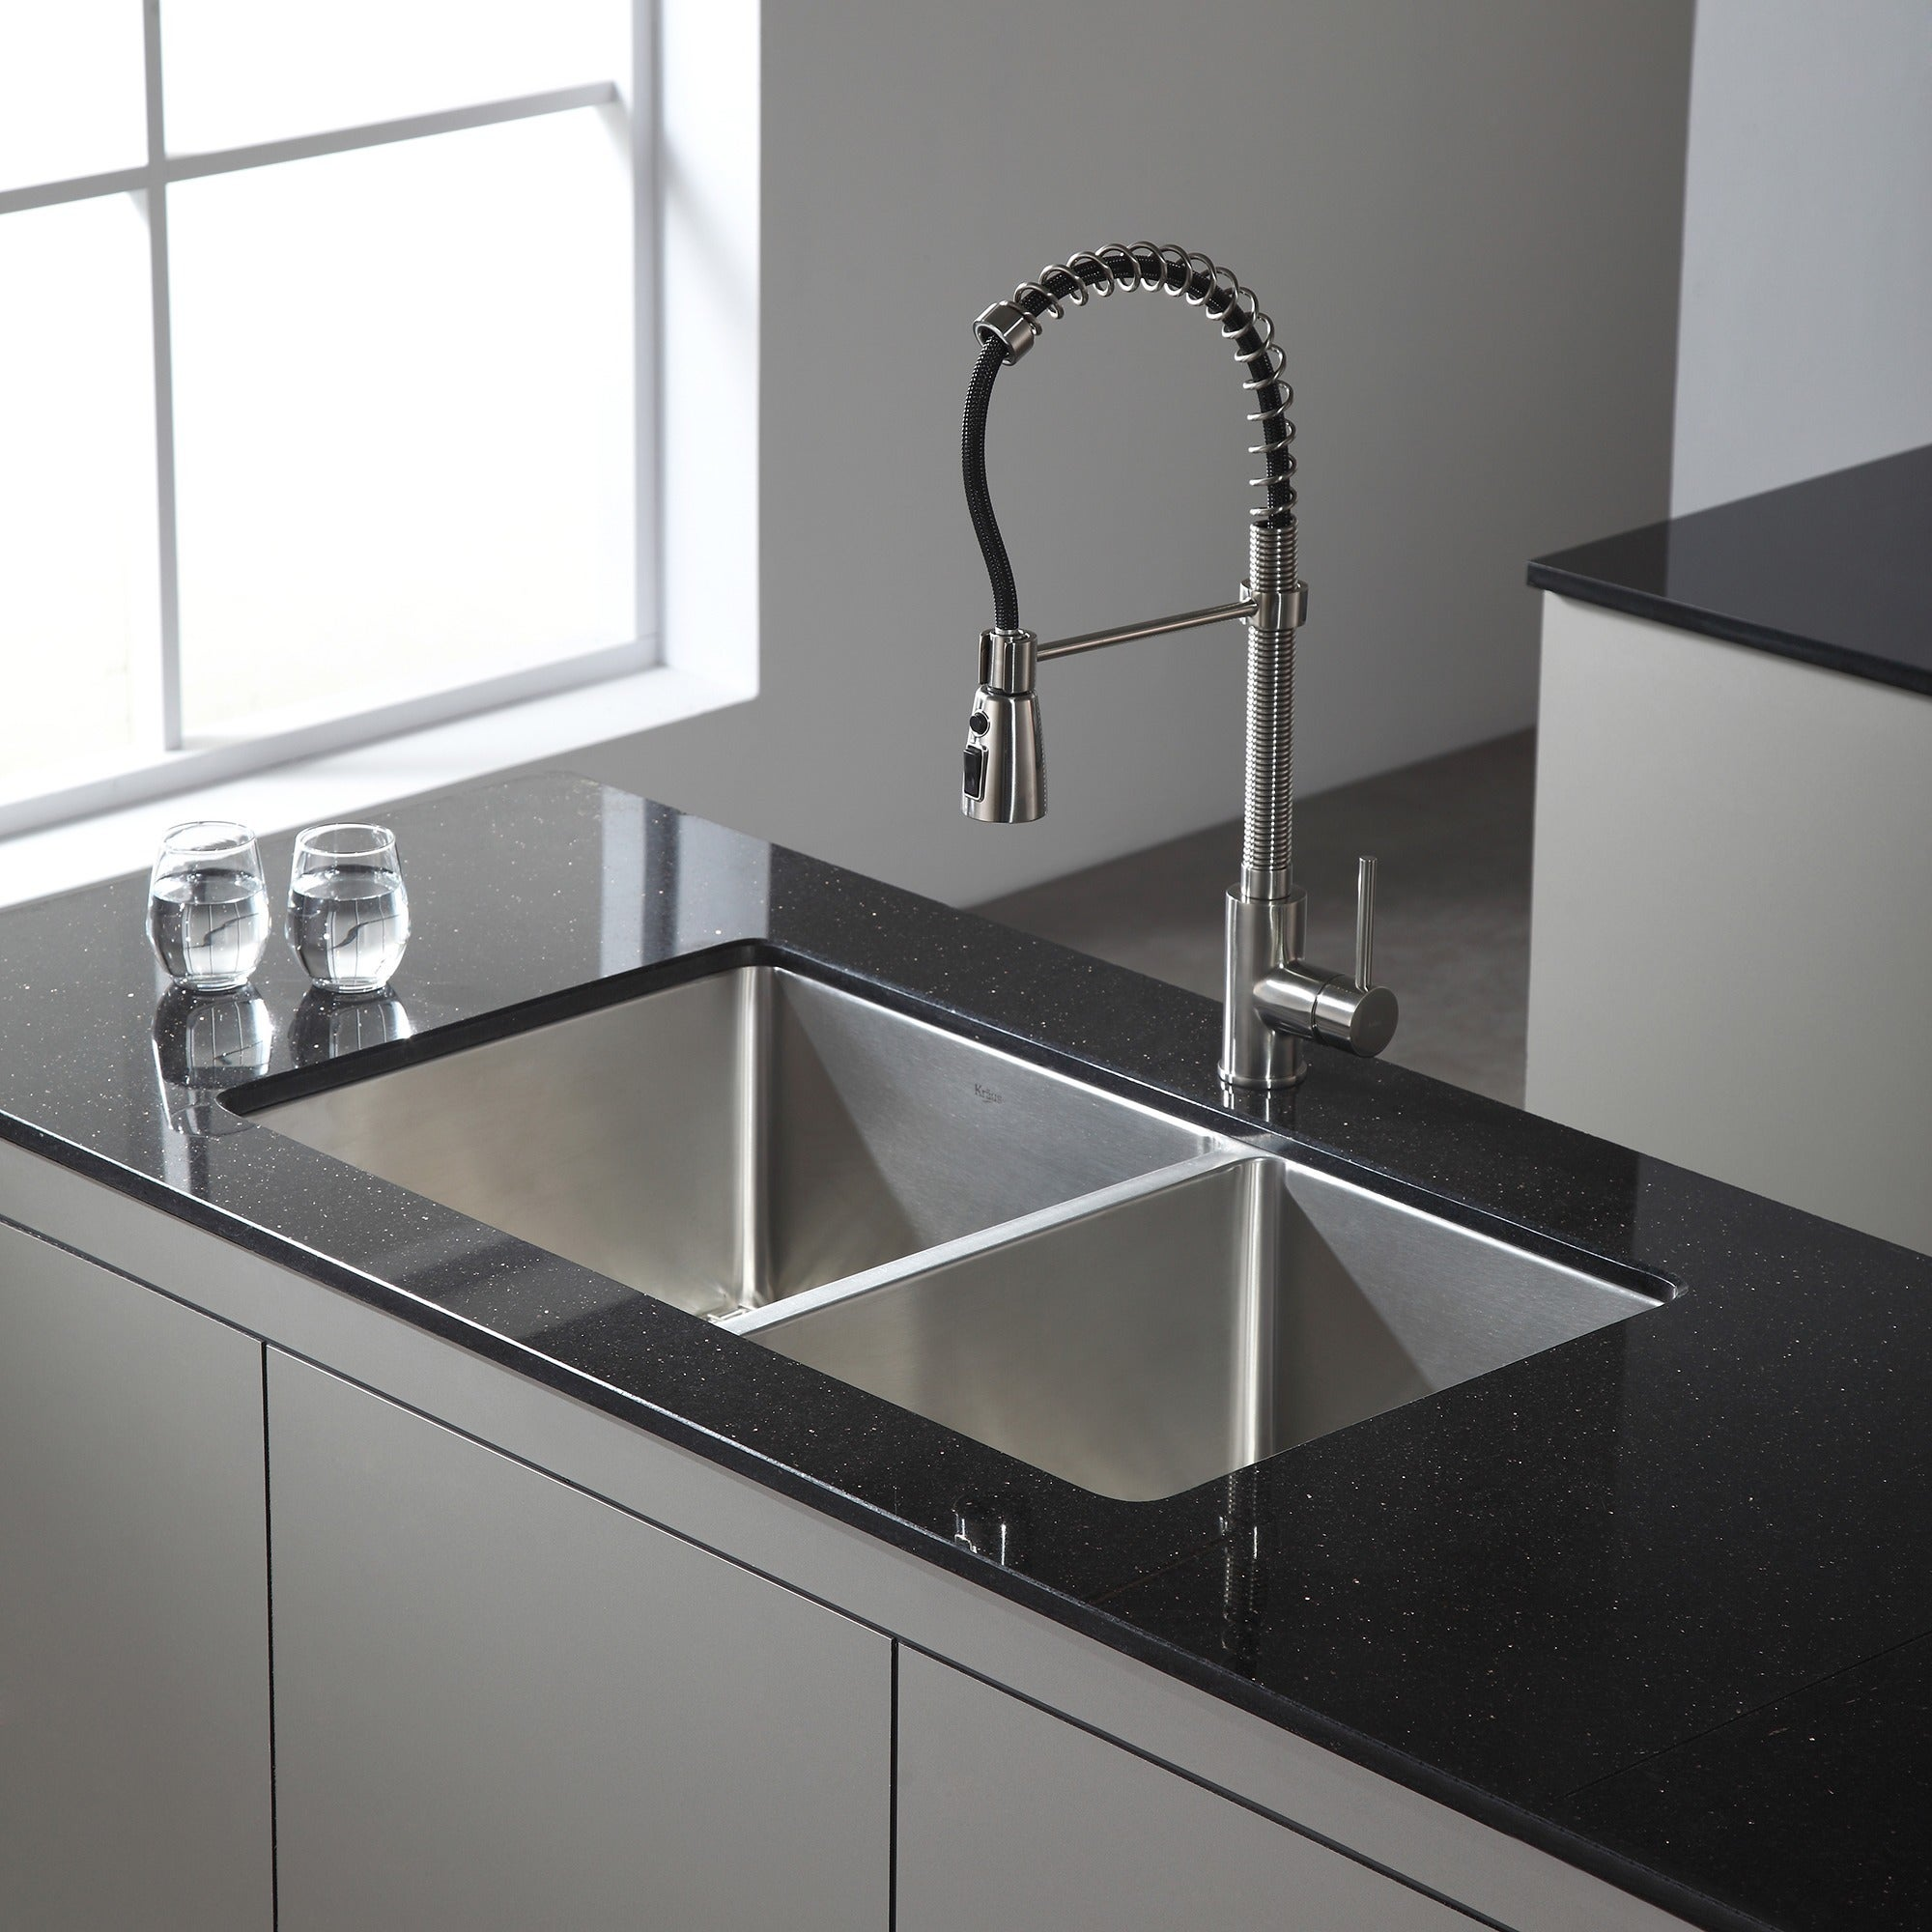 Kraus 33 Inch Undermount 50 Double Bowl 16 Gauge Stainless Steel Kitchen Sink With Noisedefend Soundproofing Free Shipping Today